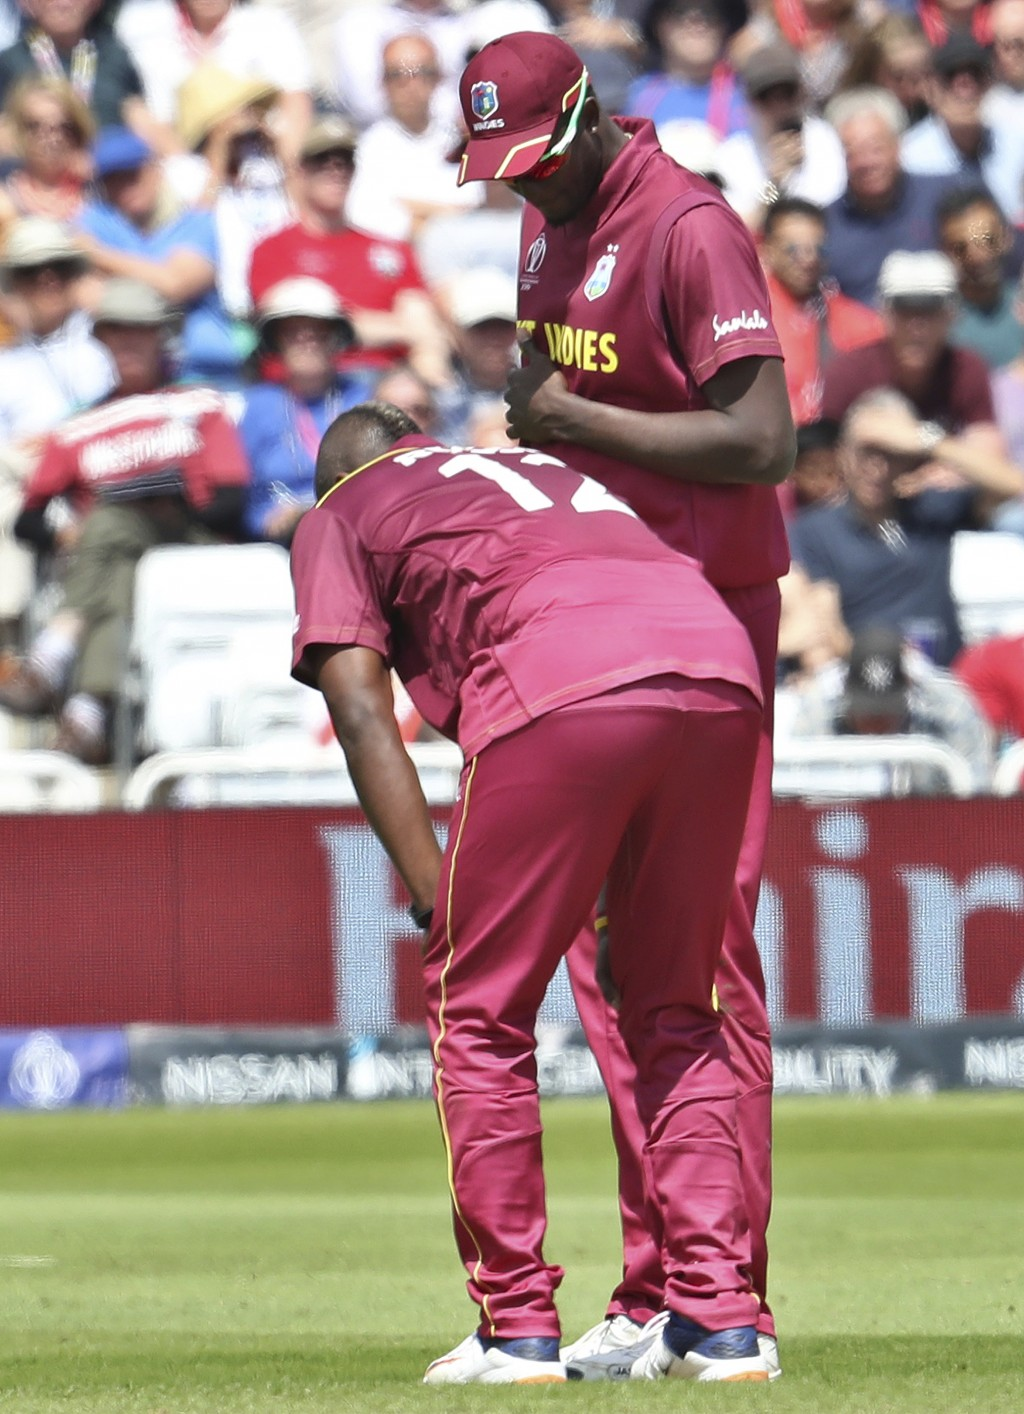 West Indies' captain Jason Holder, right, attend to teammate Andre Russell before he walked off the filed during the Cricket World Cup match between A...